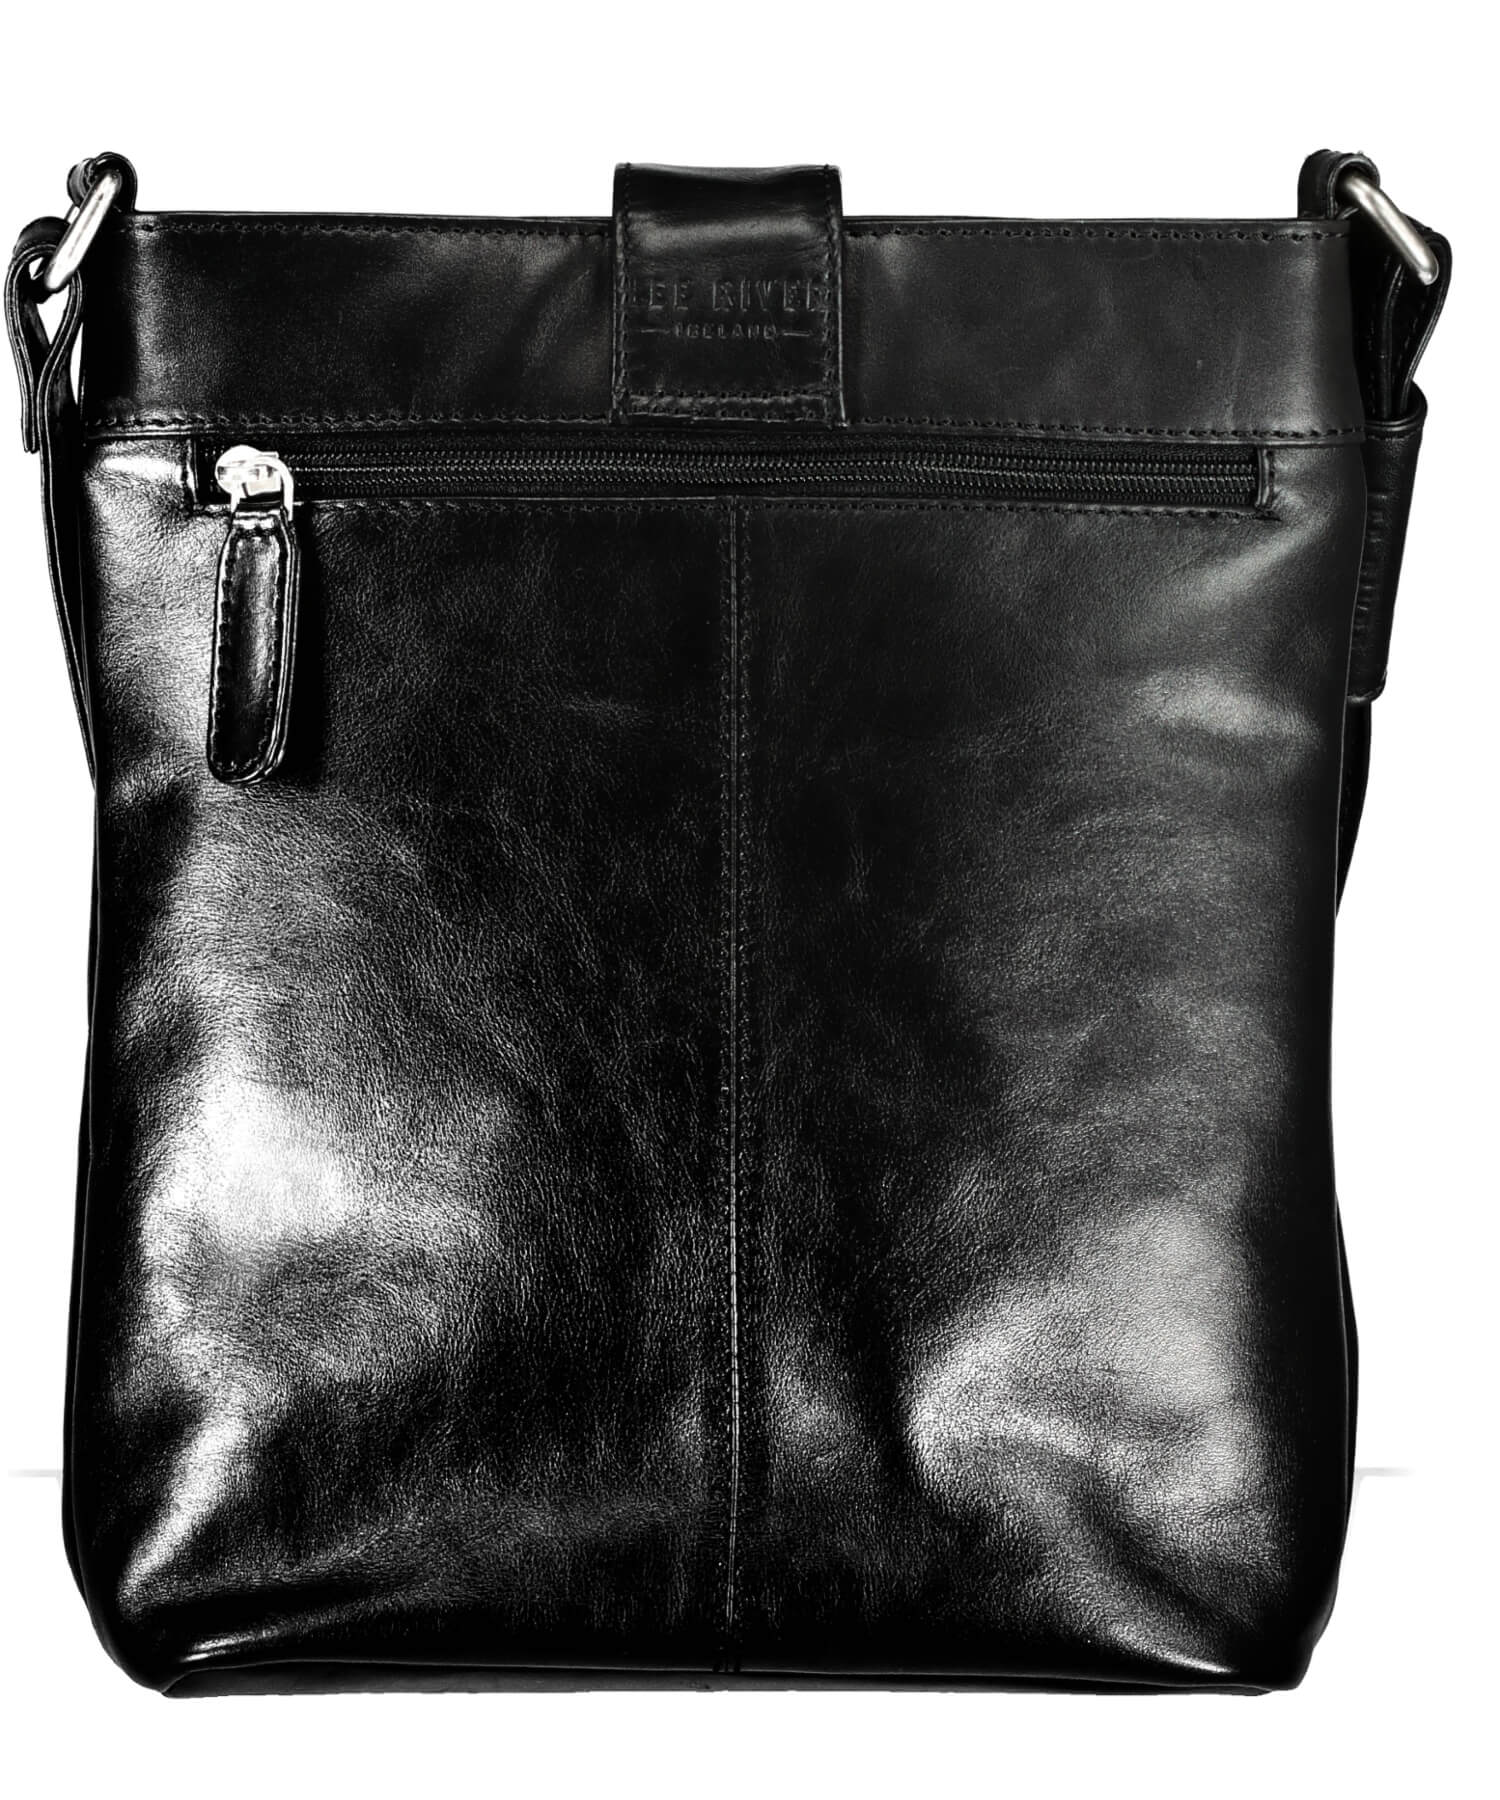 Torc Bag - Black - [Lee River] - Bags, Purses & Wallets - Irish Gifts